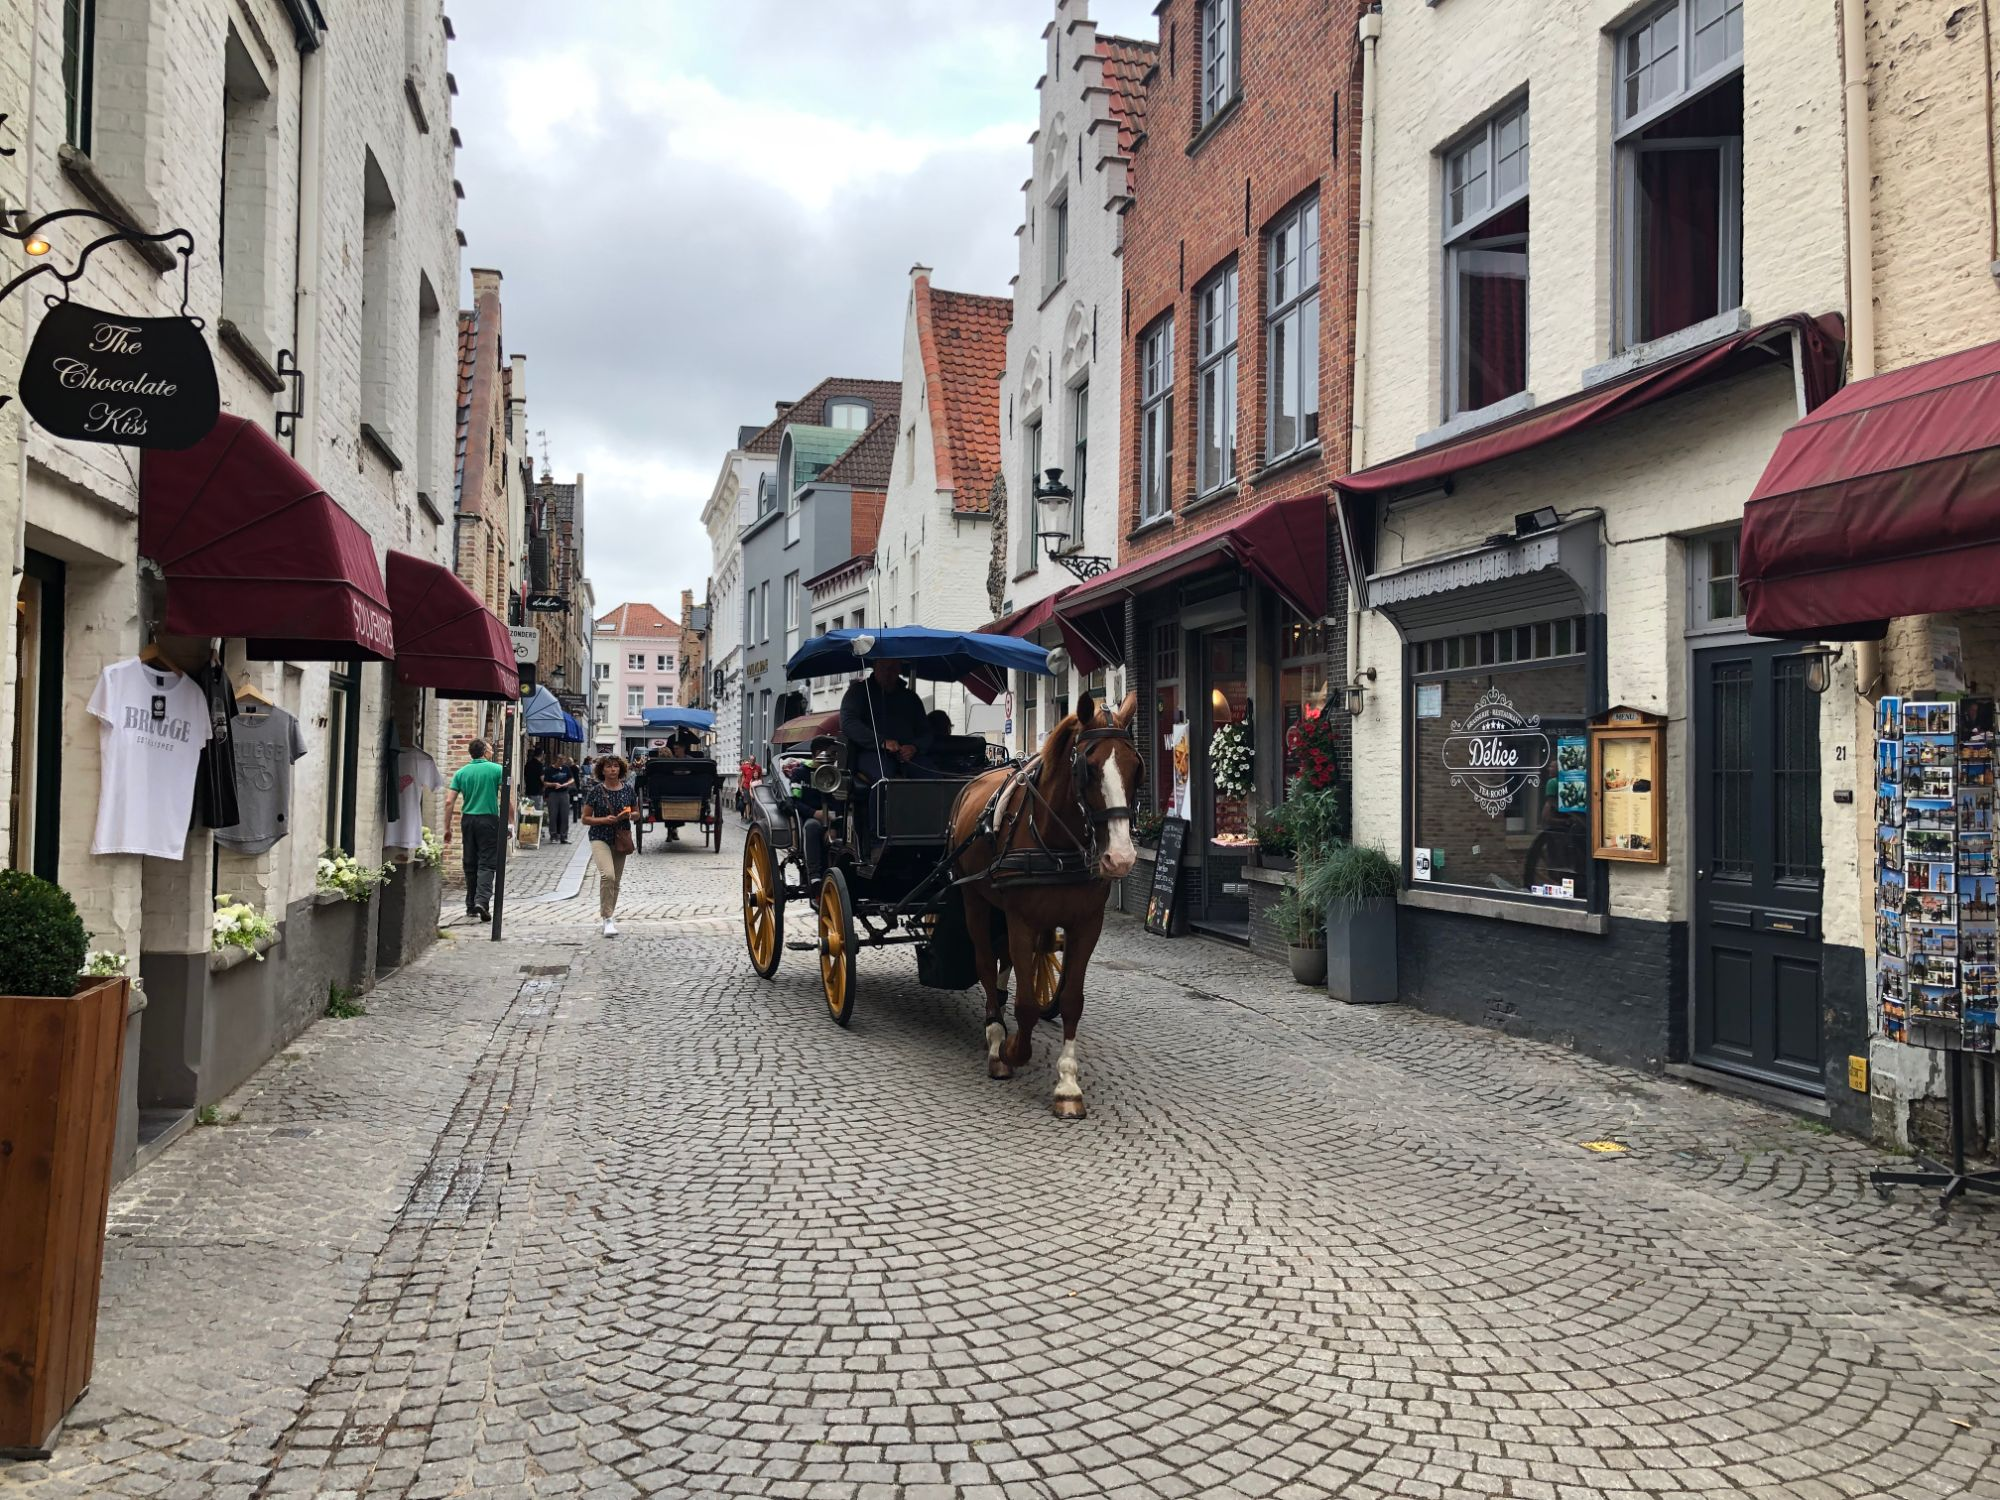 Free stock photo Bruges Belgium buildings architecture horse cart